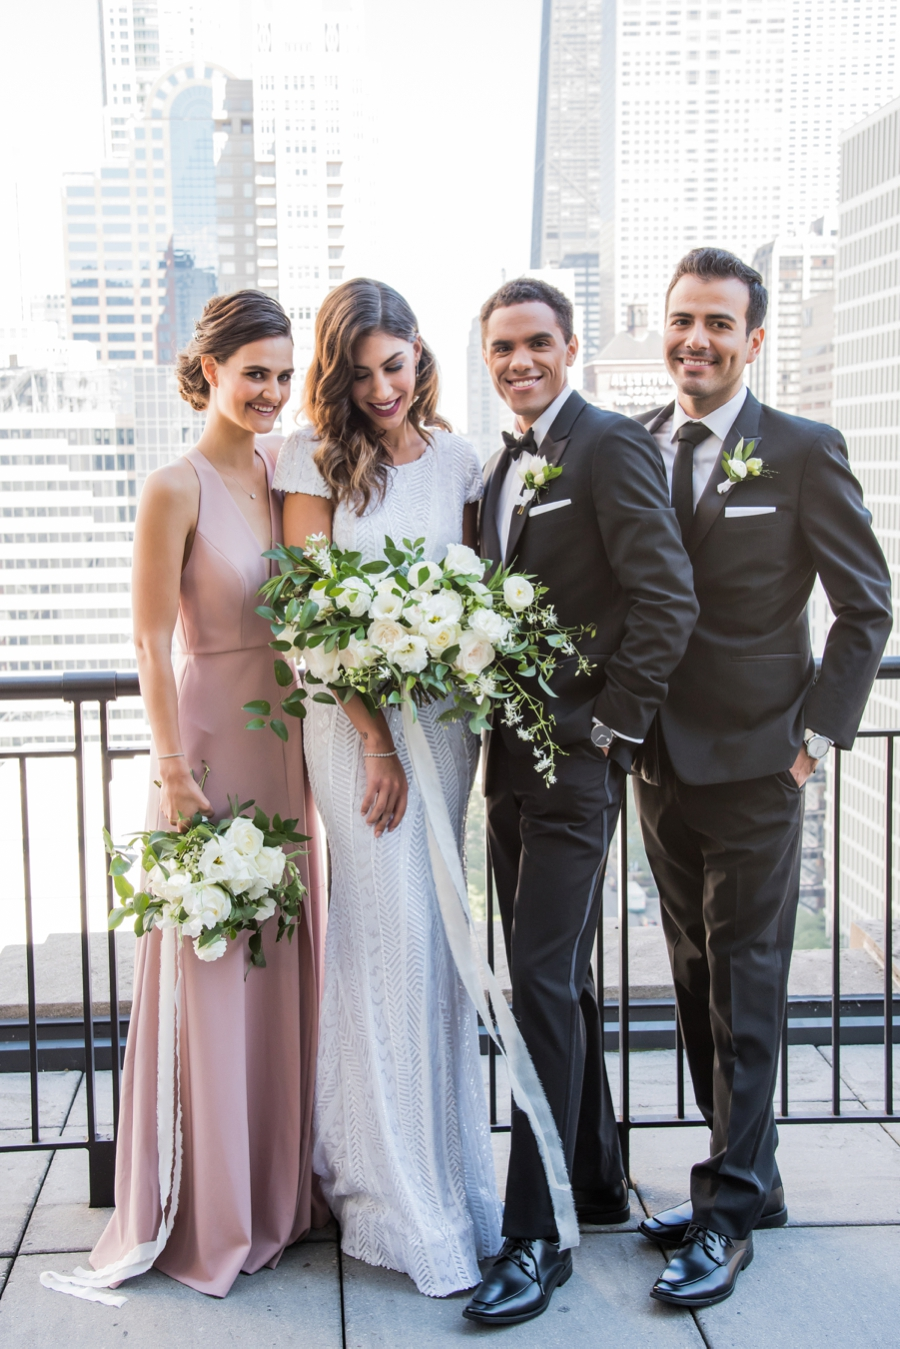 Modern Rooftop Elopement Inspiration With Chic Wedding Day Gift Ideas via TheELD.com modern rooftop elopement inspiration with chic wedding day gift ideas - A Modern Rooftop Elopement Inspiration 0041 - Modern Rooftop Elopement Inspiration With Chic Wedding Day Gift Ideas